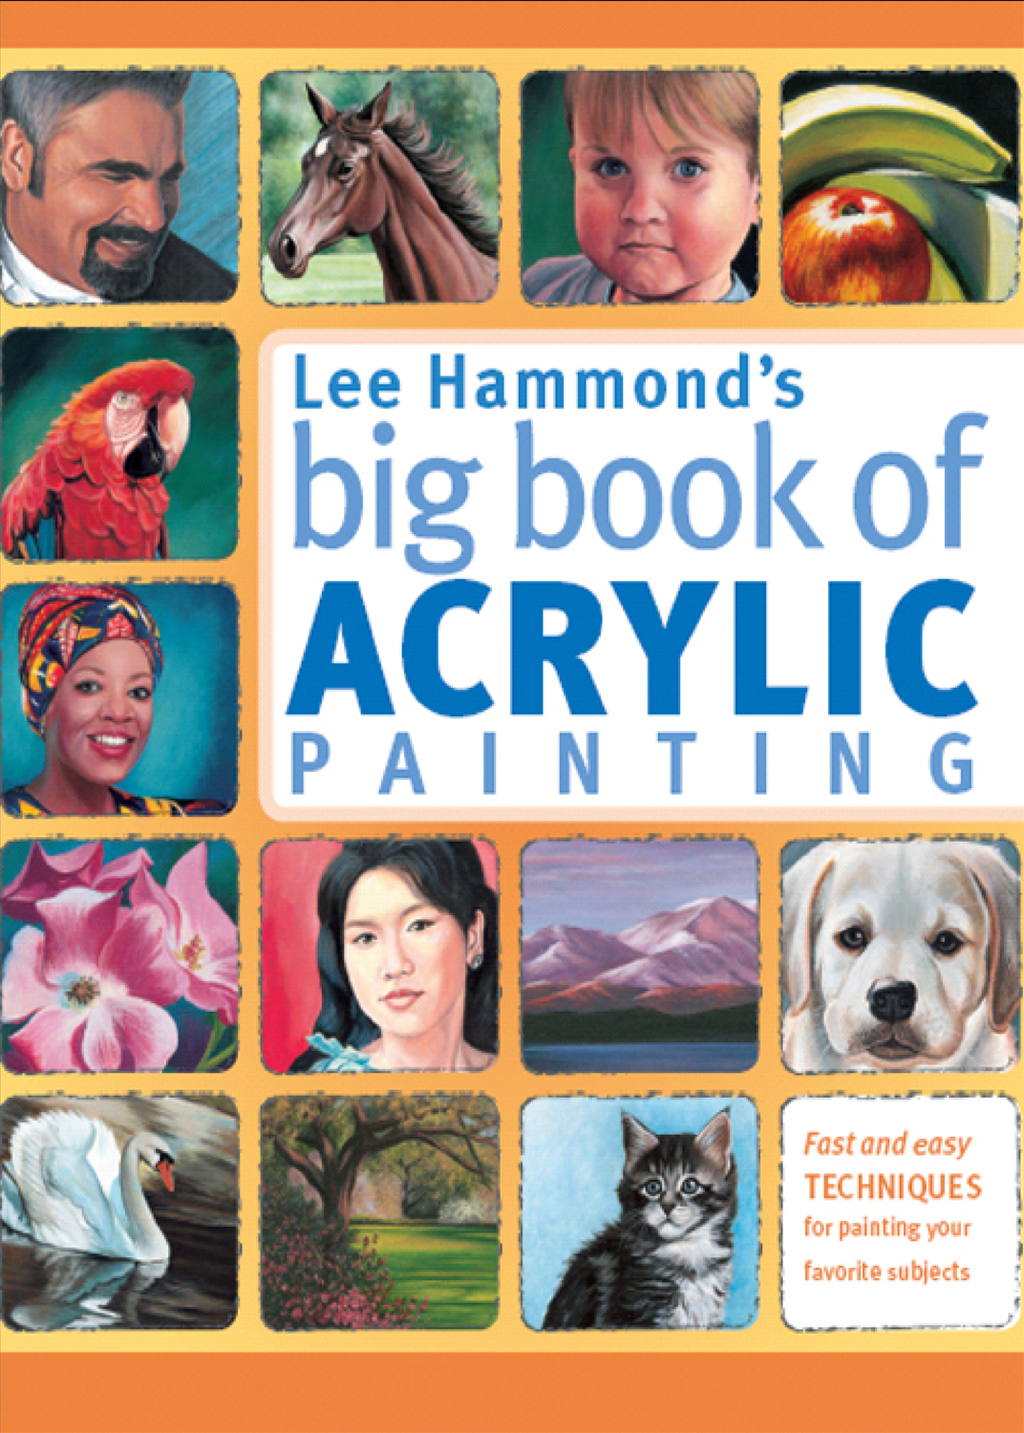 Lee Hammond's Big Book of Acrylic Painting Fast,  easy techniques for painting your favorite subjects